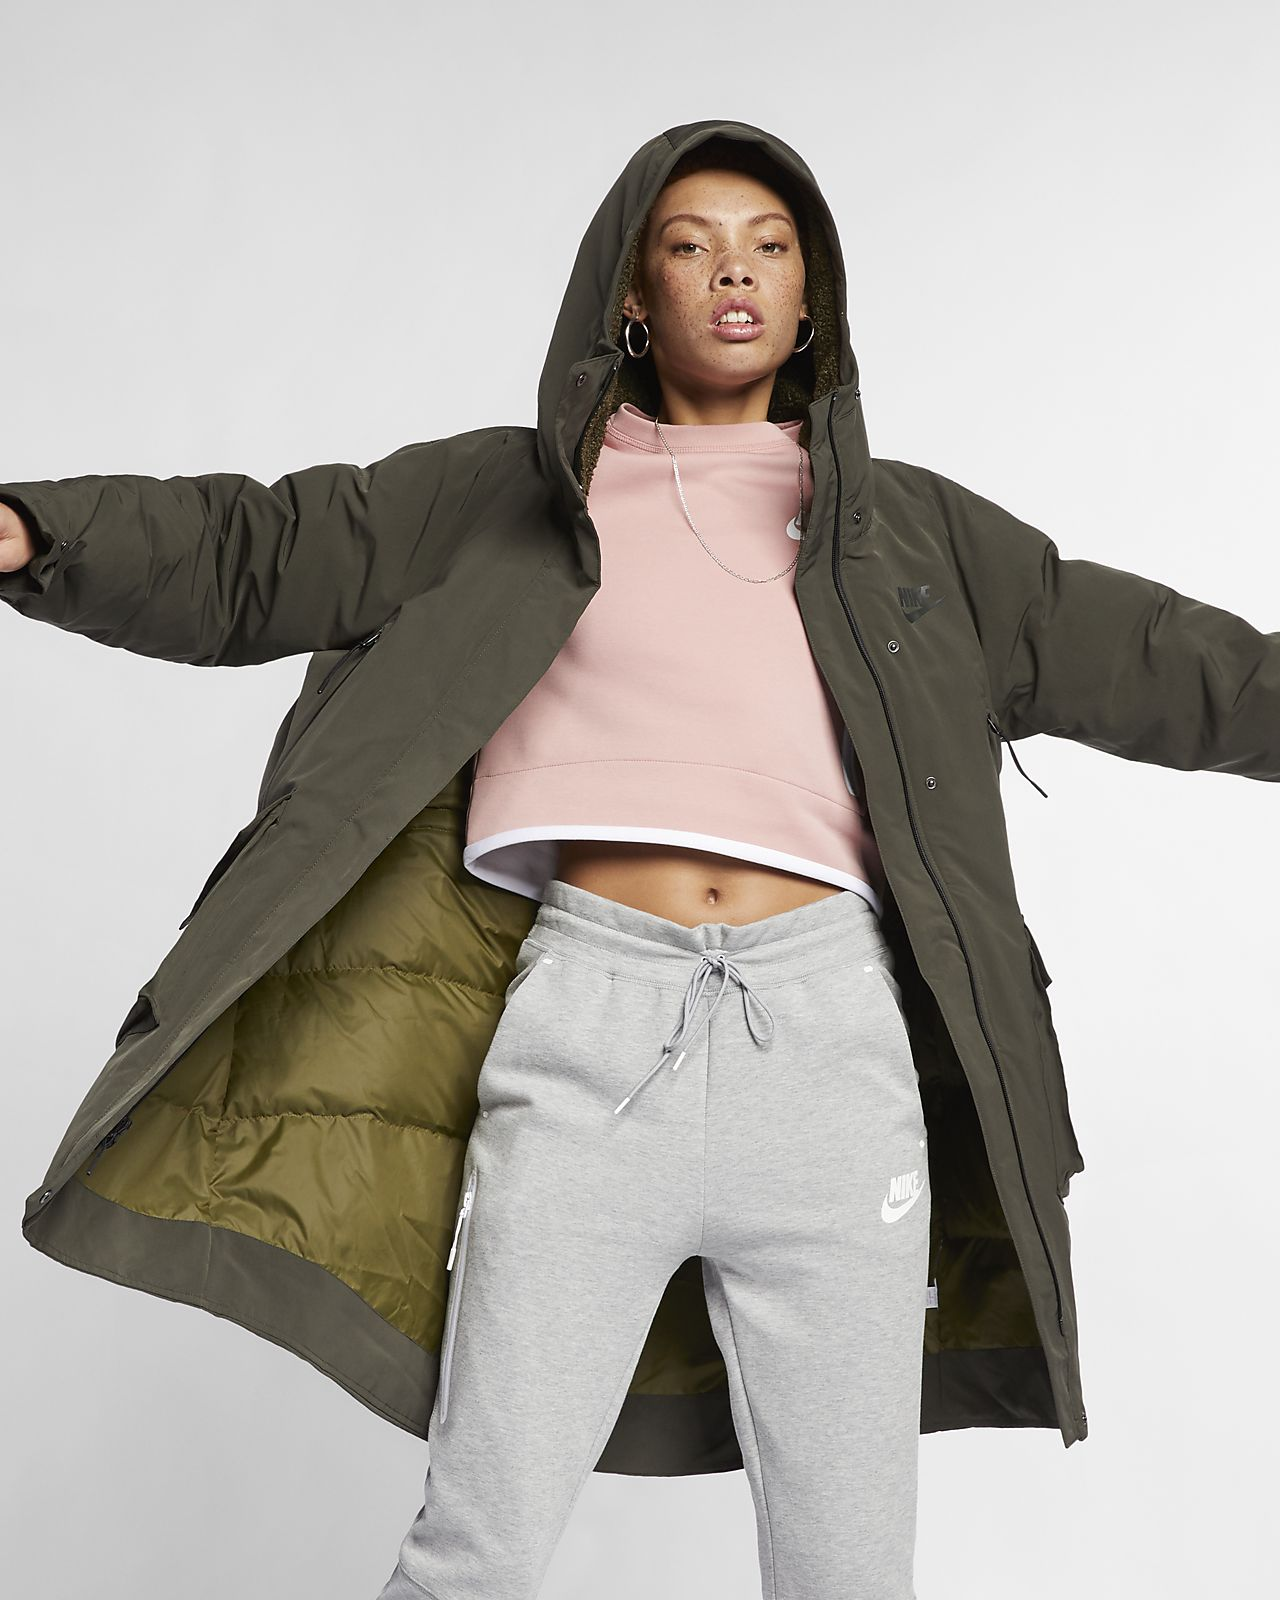 Fill Down Femme Tech Sportswear Be Pour Nike Parka Pack wq14HxRpX